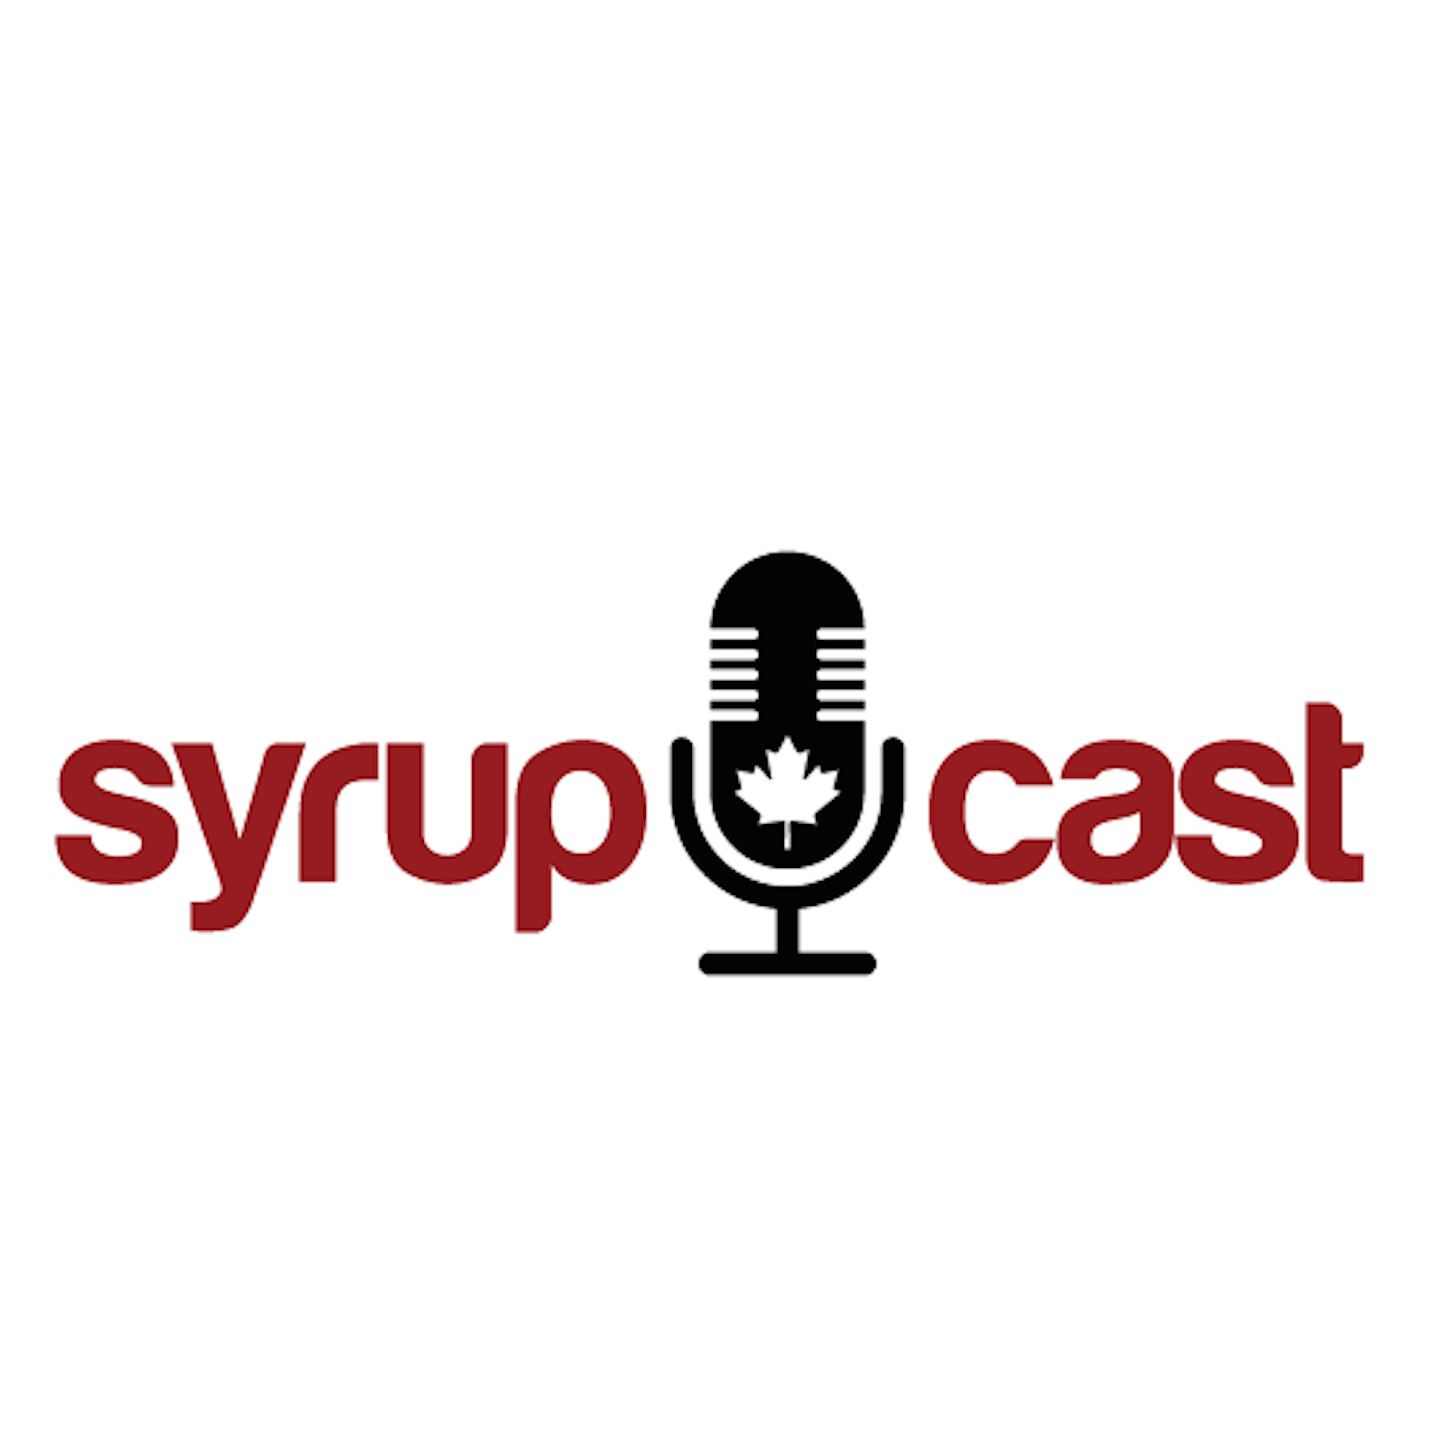 SyrupCast 67: BlackBerry, RCMP, and a future shaped by Canadians